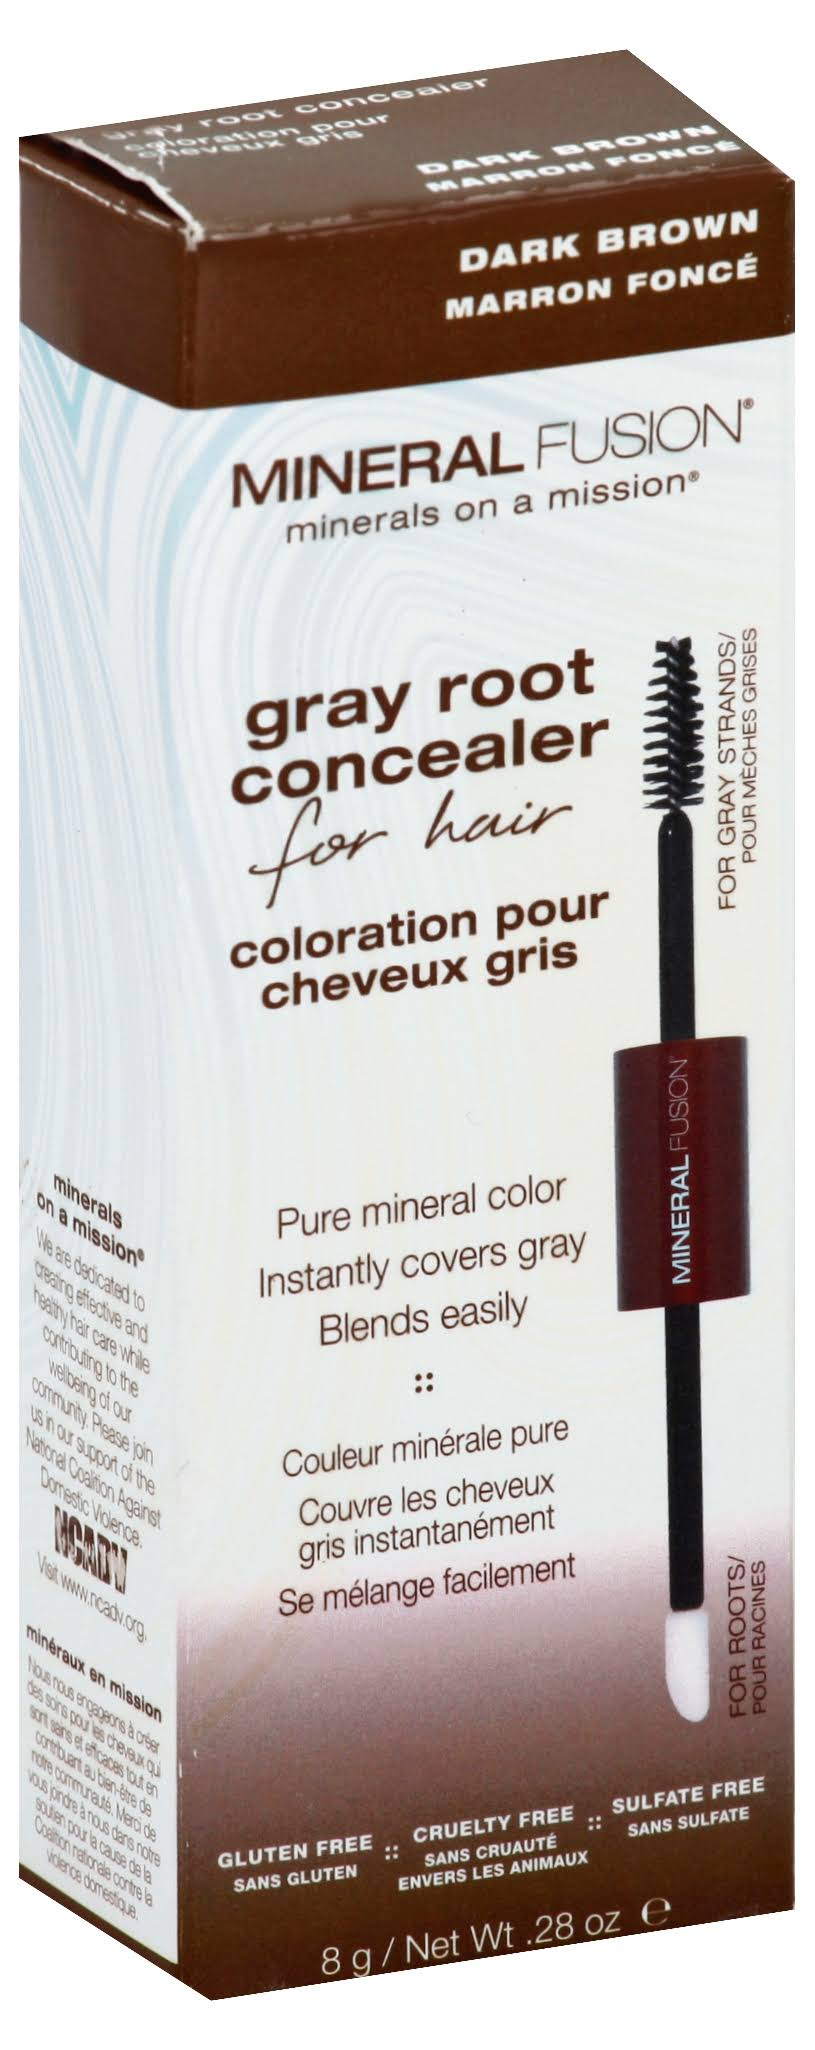 Mineral Fusion Gray Root Concealer - Dark Brown, 8g